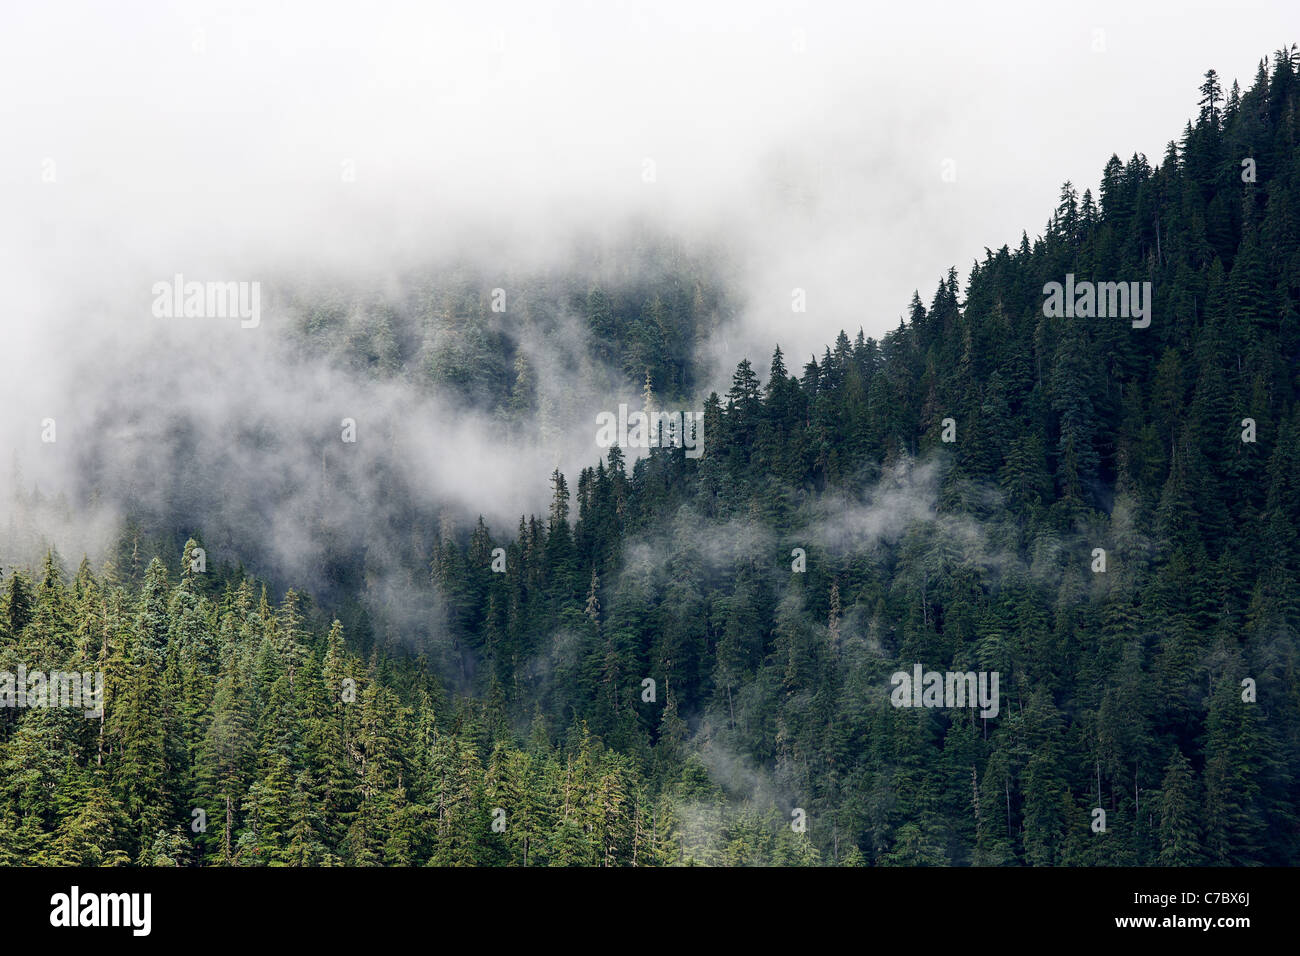 Clouds interspersed with old growth forested ridges, Mount Rainier National Park, Washington, USA - Stock Image